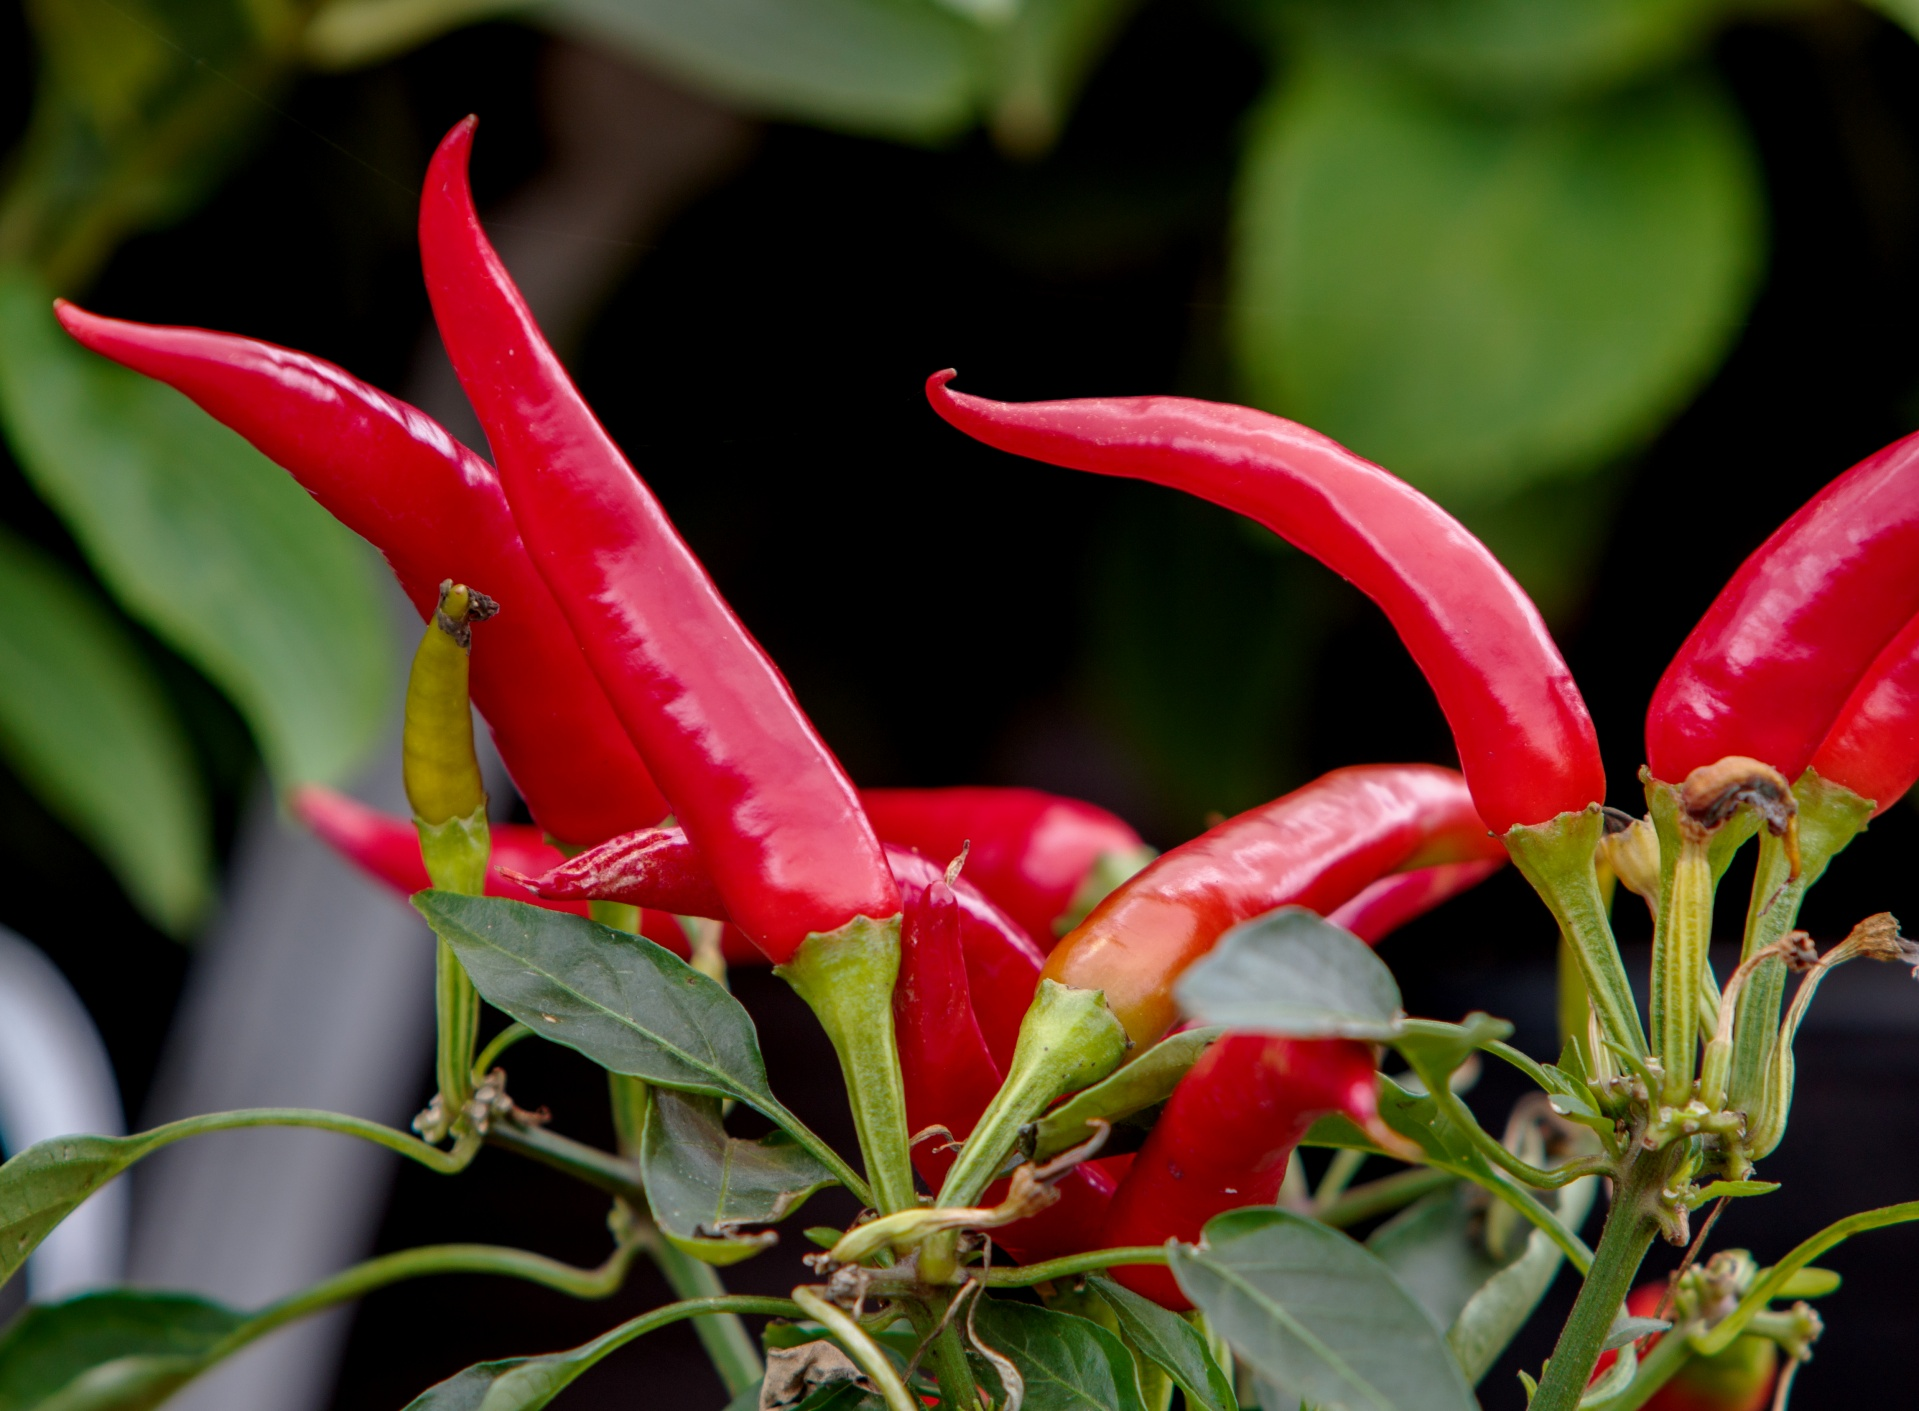 Red Chili Peppers Free Stock Photo - Public Domain Pictures